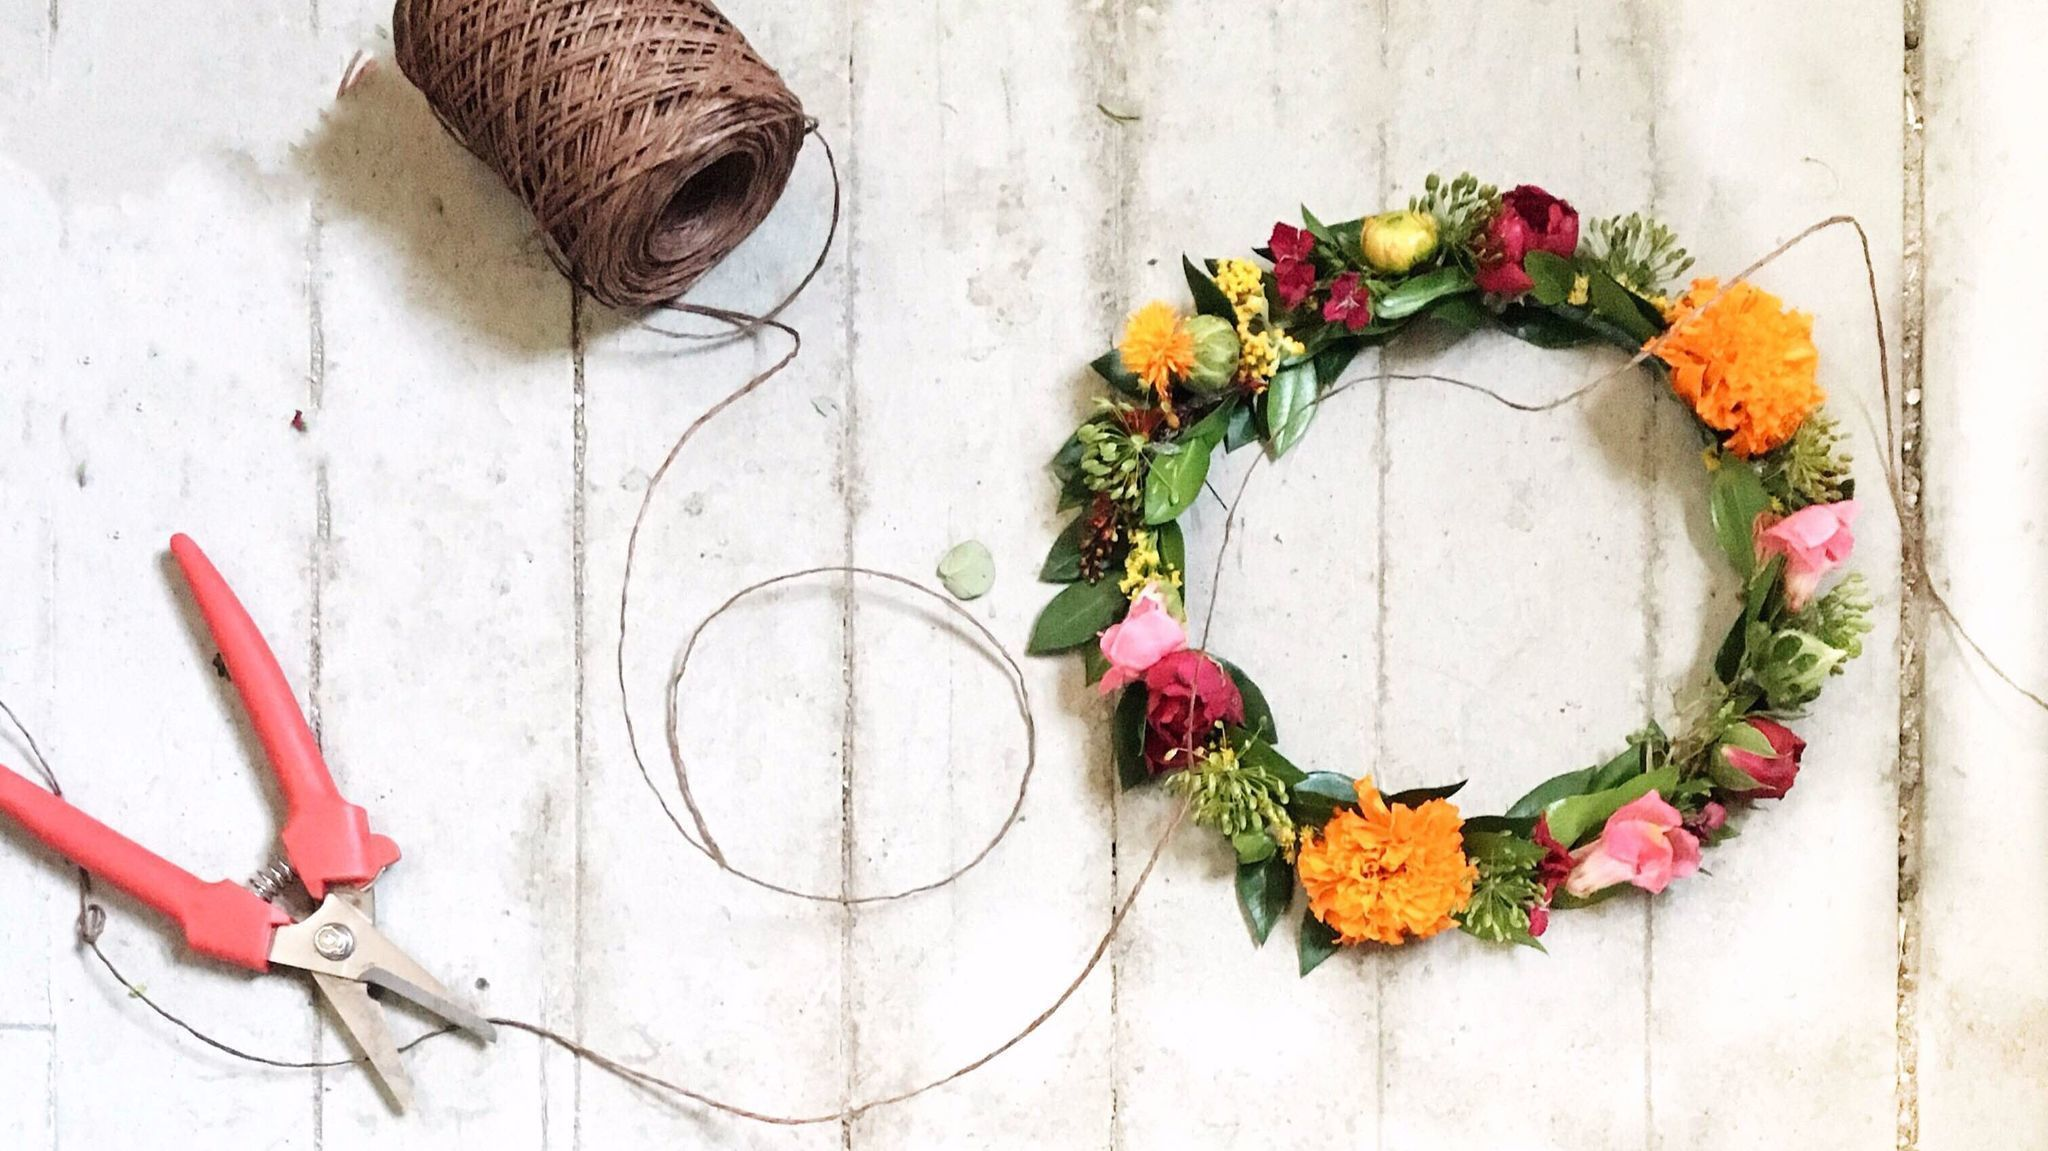 Make Your Own Flower Crown For Lollapalooza At Travelle Kitchen